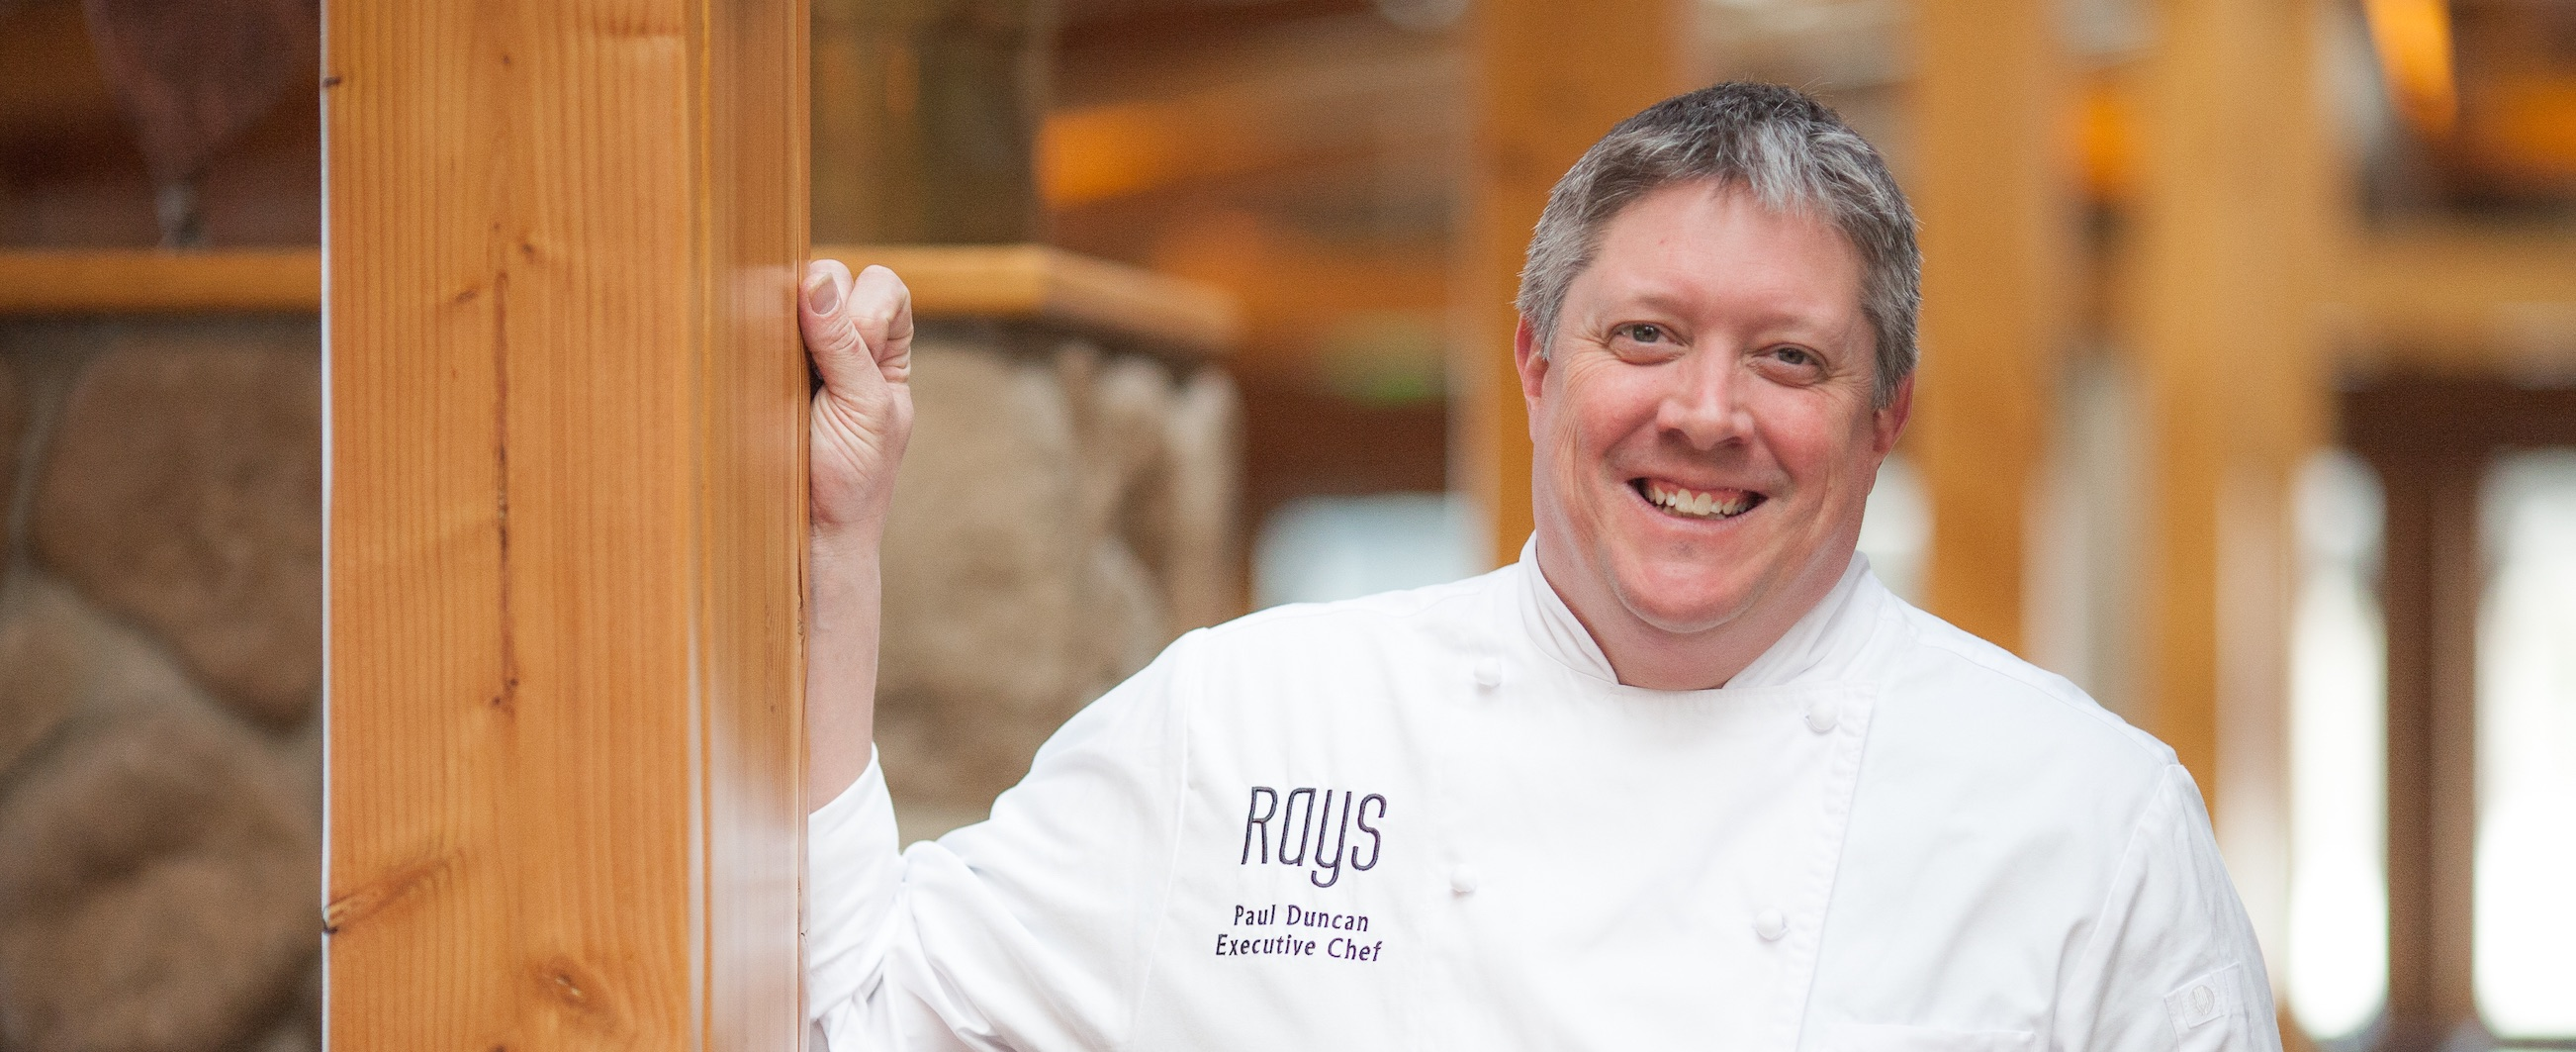 Paul Duncan – Executive Chef